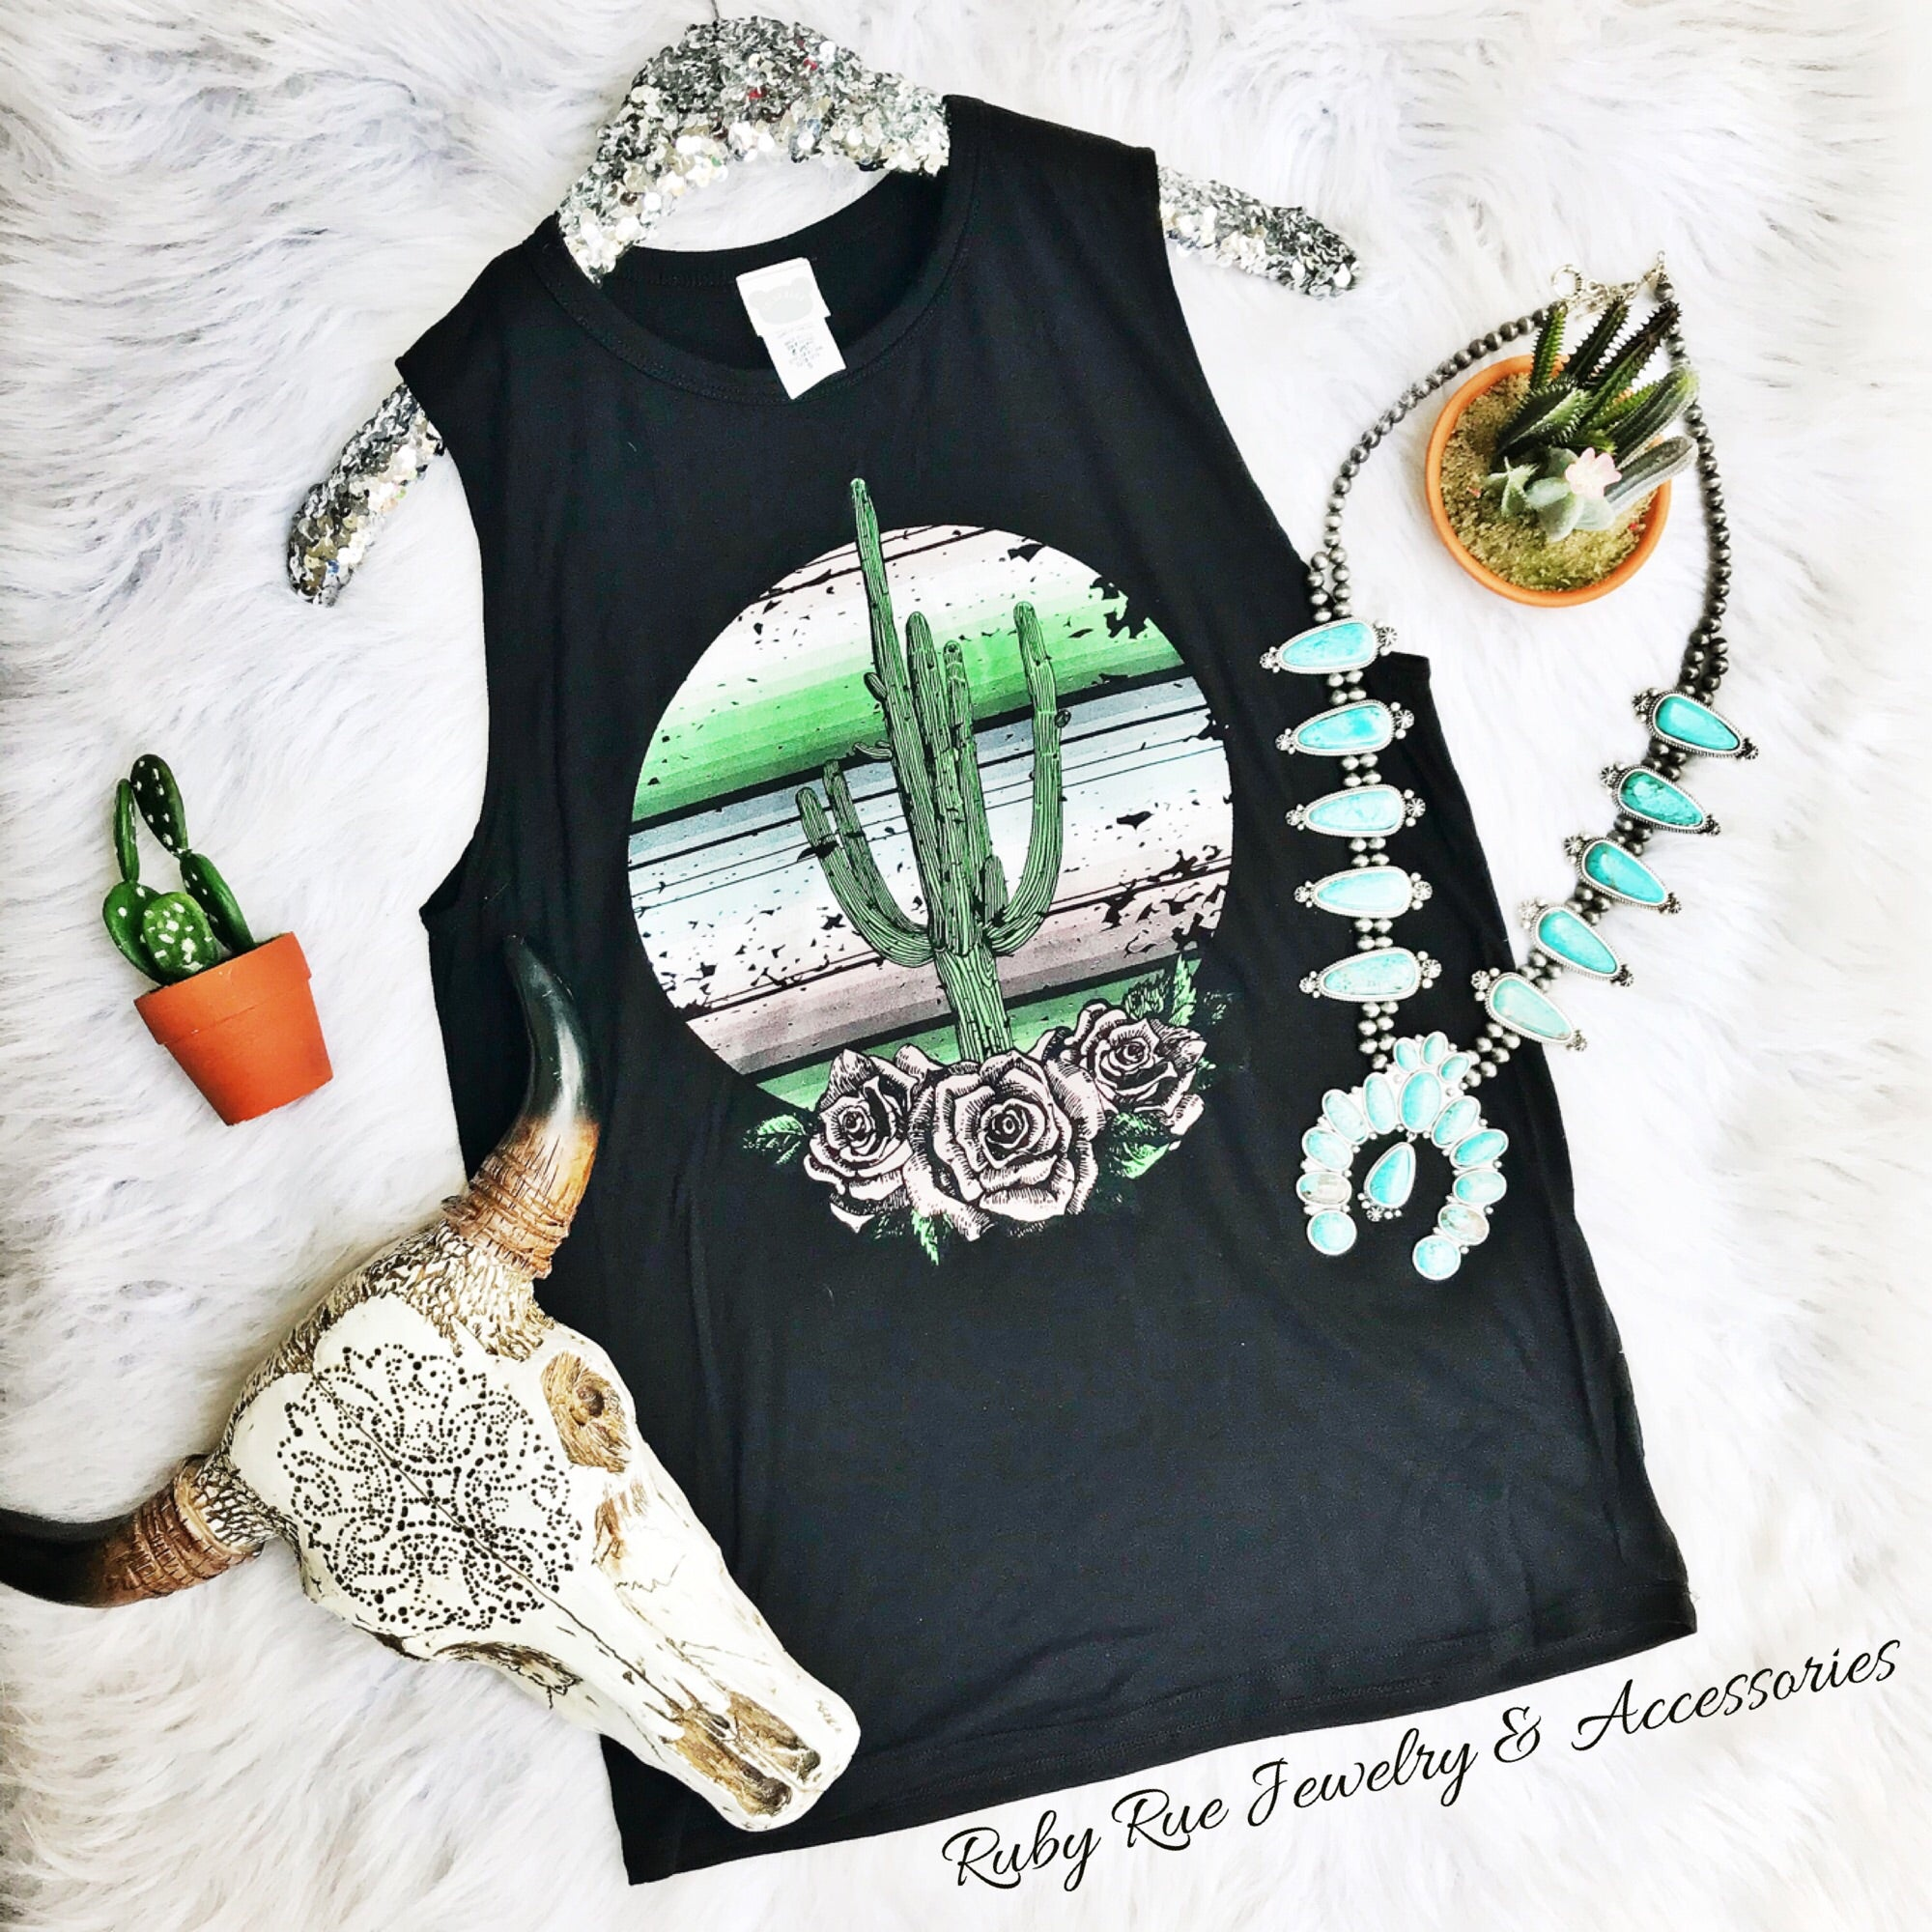 Cactus Muscle Tank - Ruby Rue Jewelry & Accessories